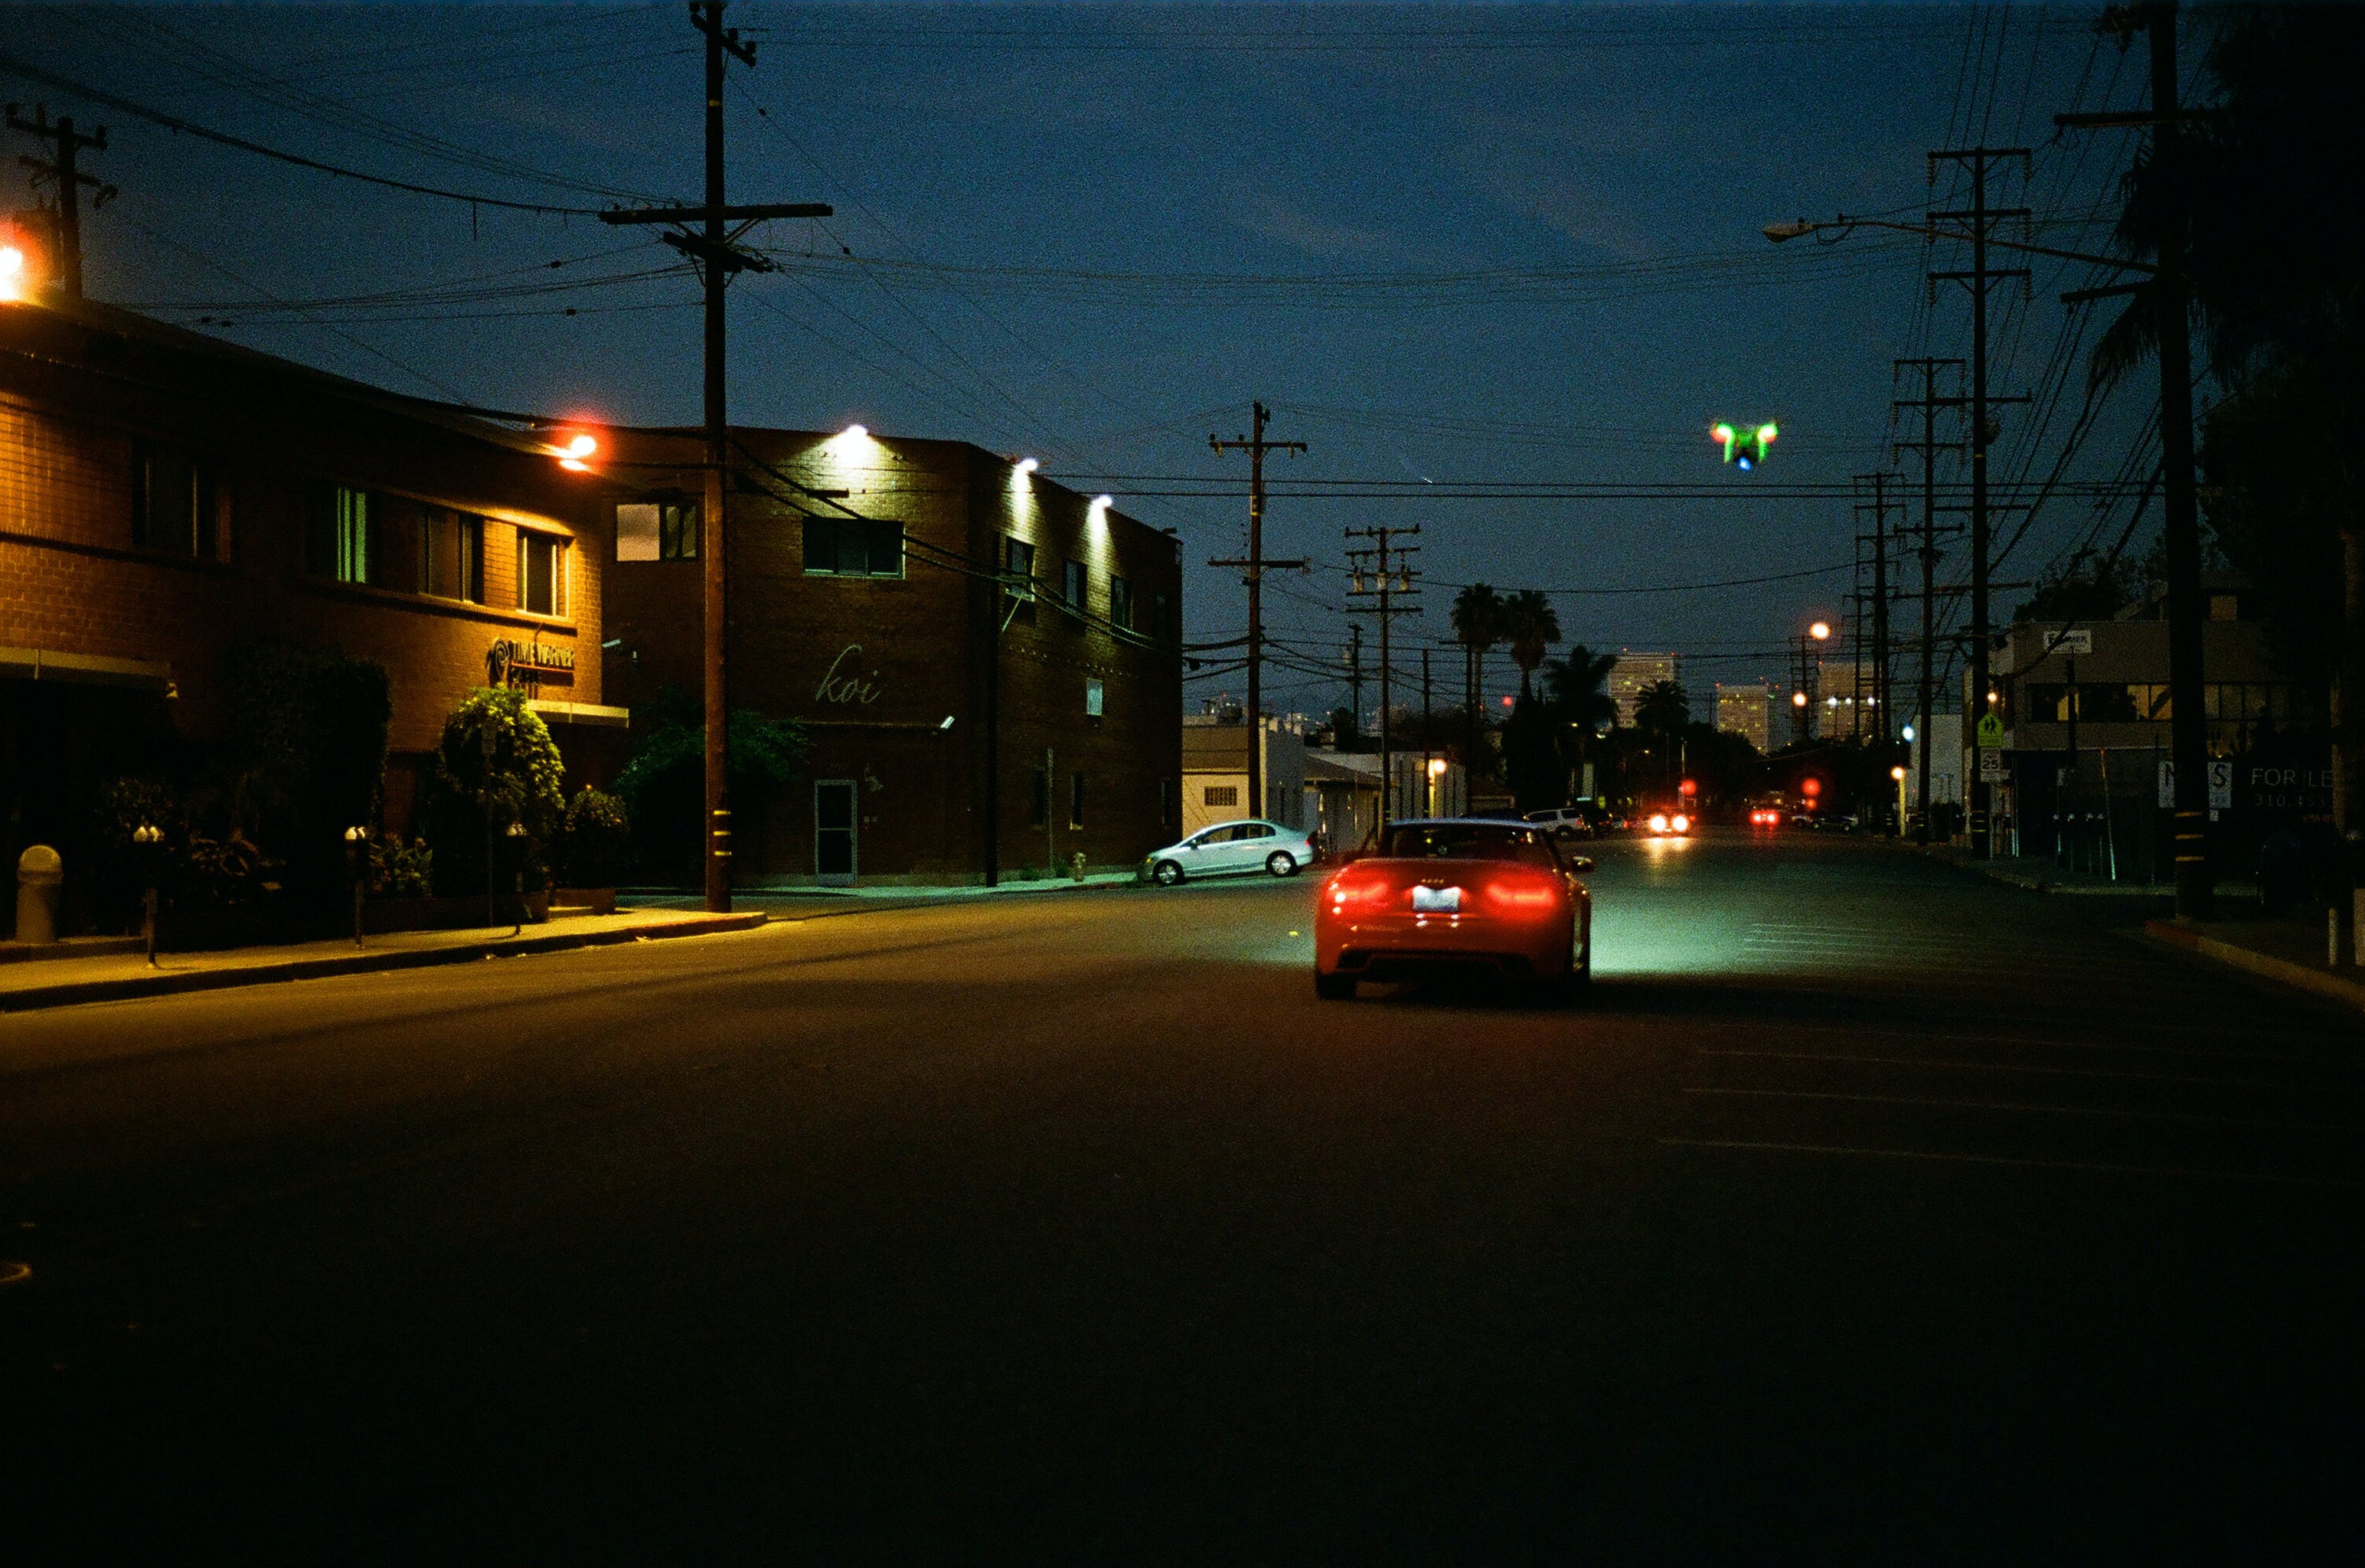 Free stock photo of night, street, dark, car